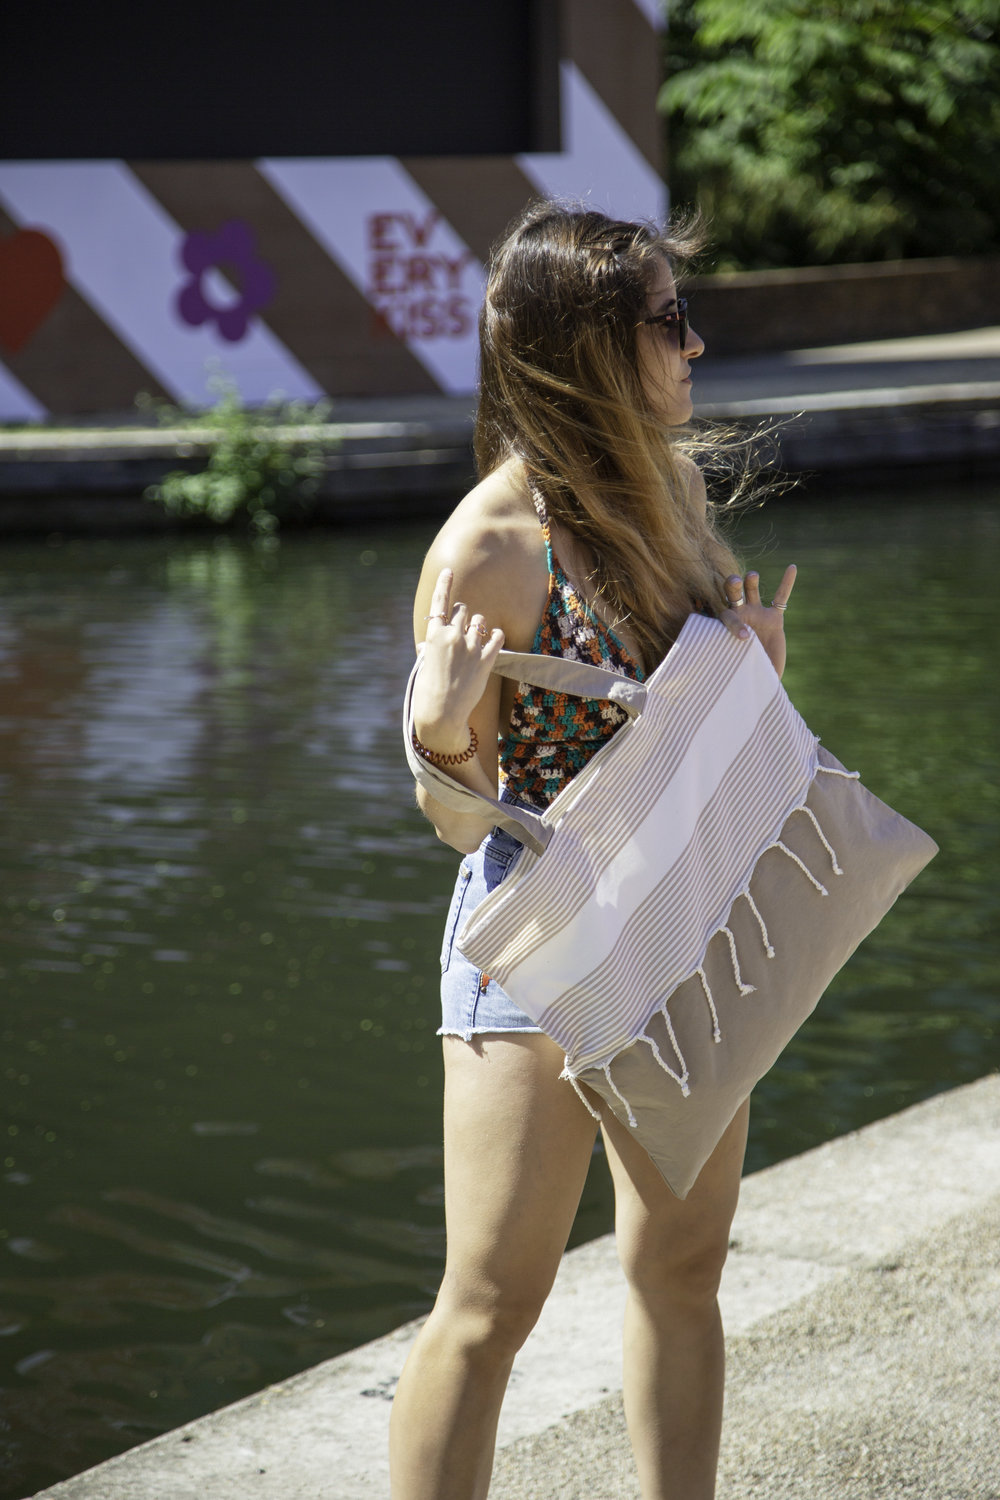 Lara Costa with the  Sandy Beach Bag , photographed by Pamela Aminou